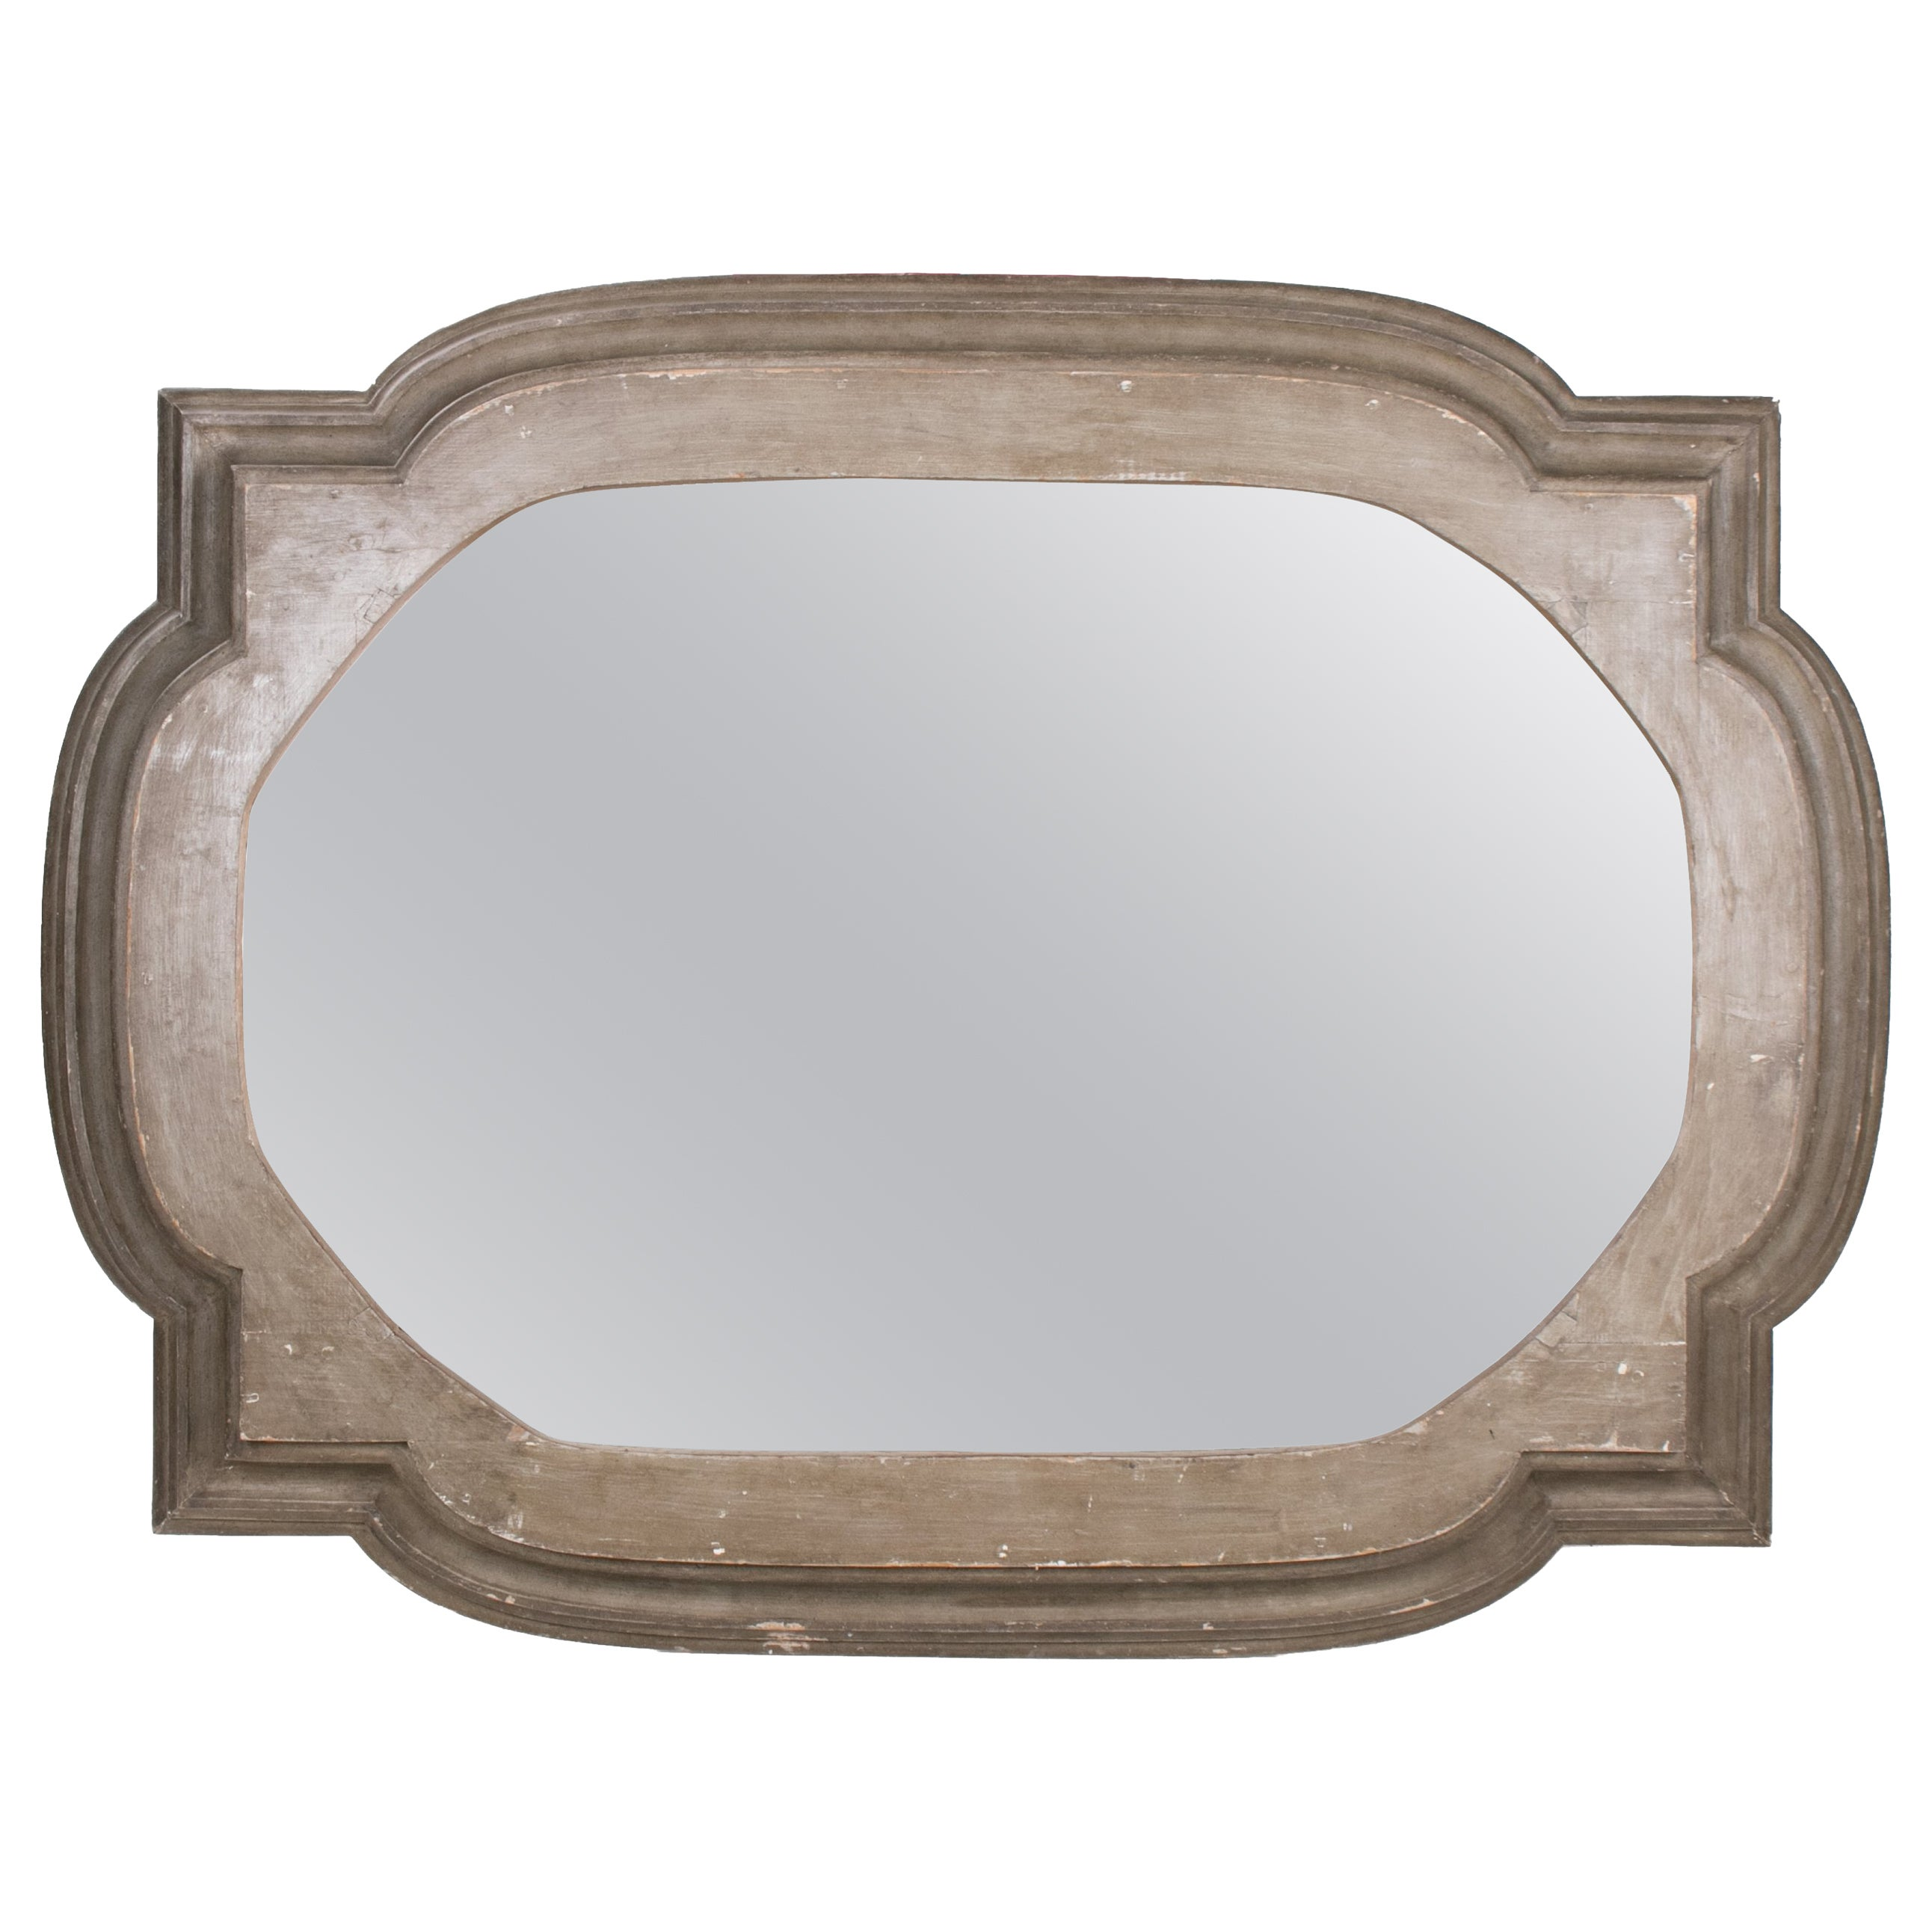 1970s French Decorative Wooden Mirror